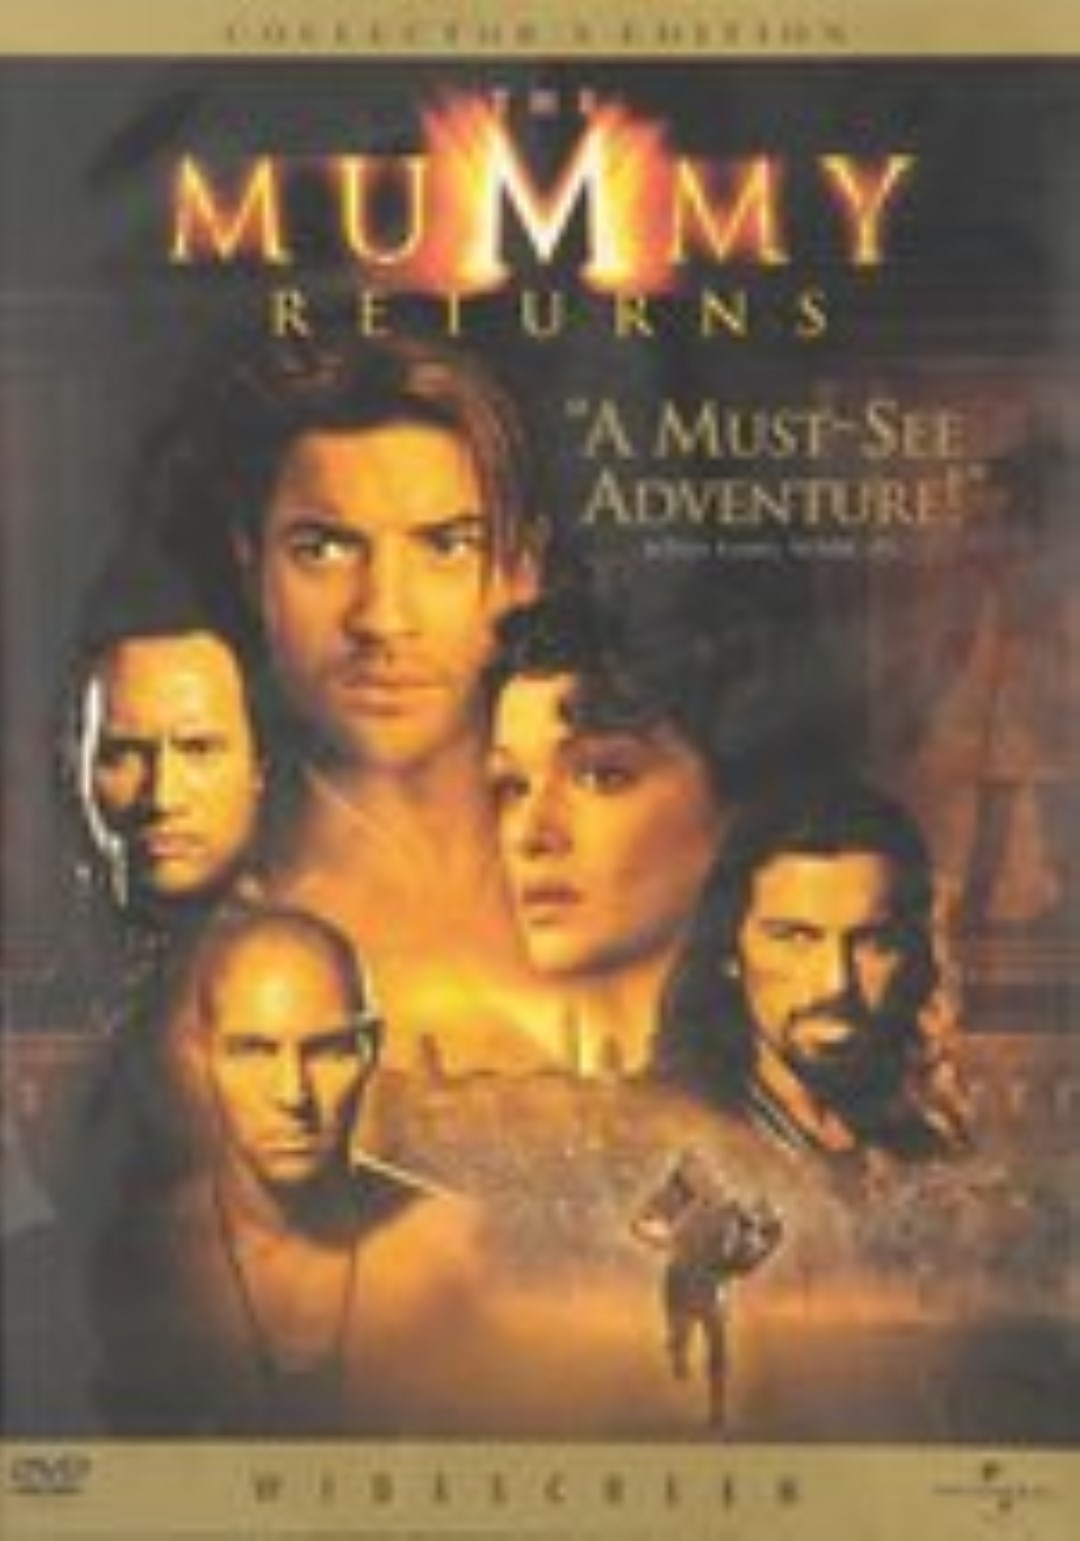 The Mummy Returns Dvd